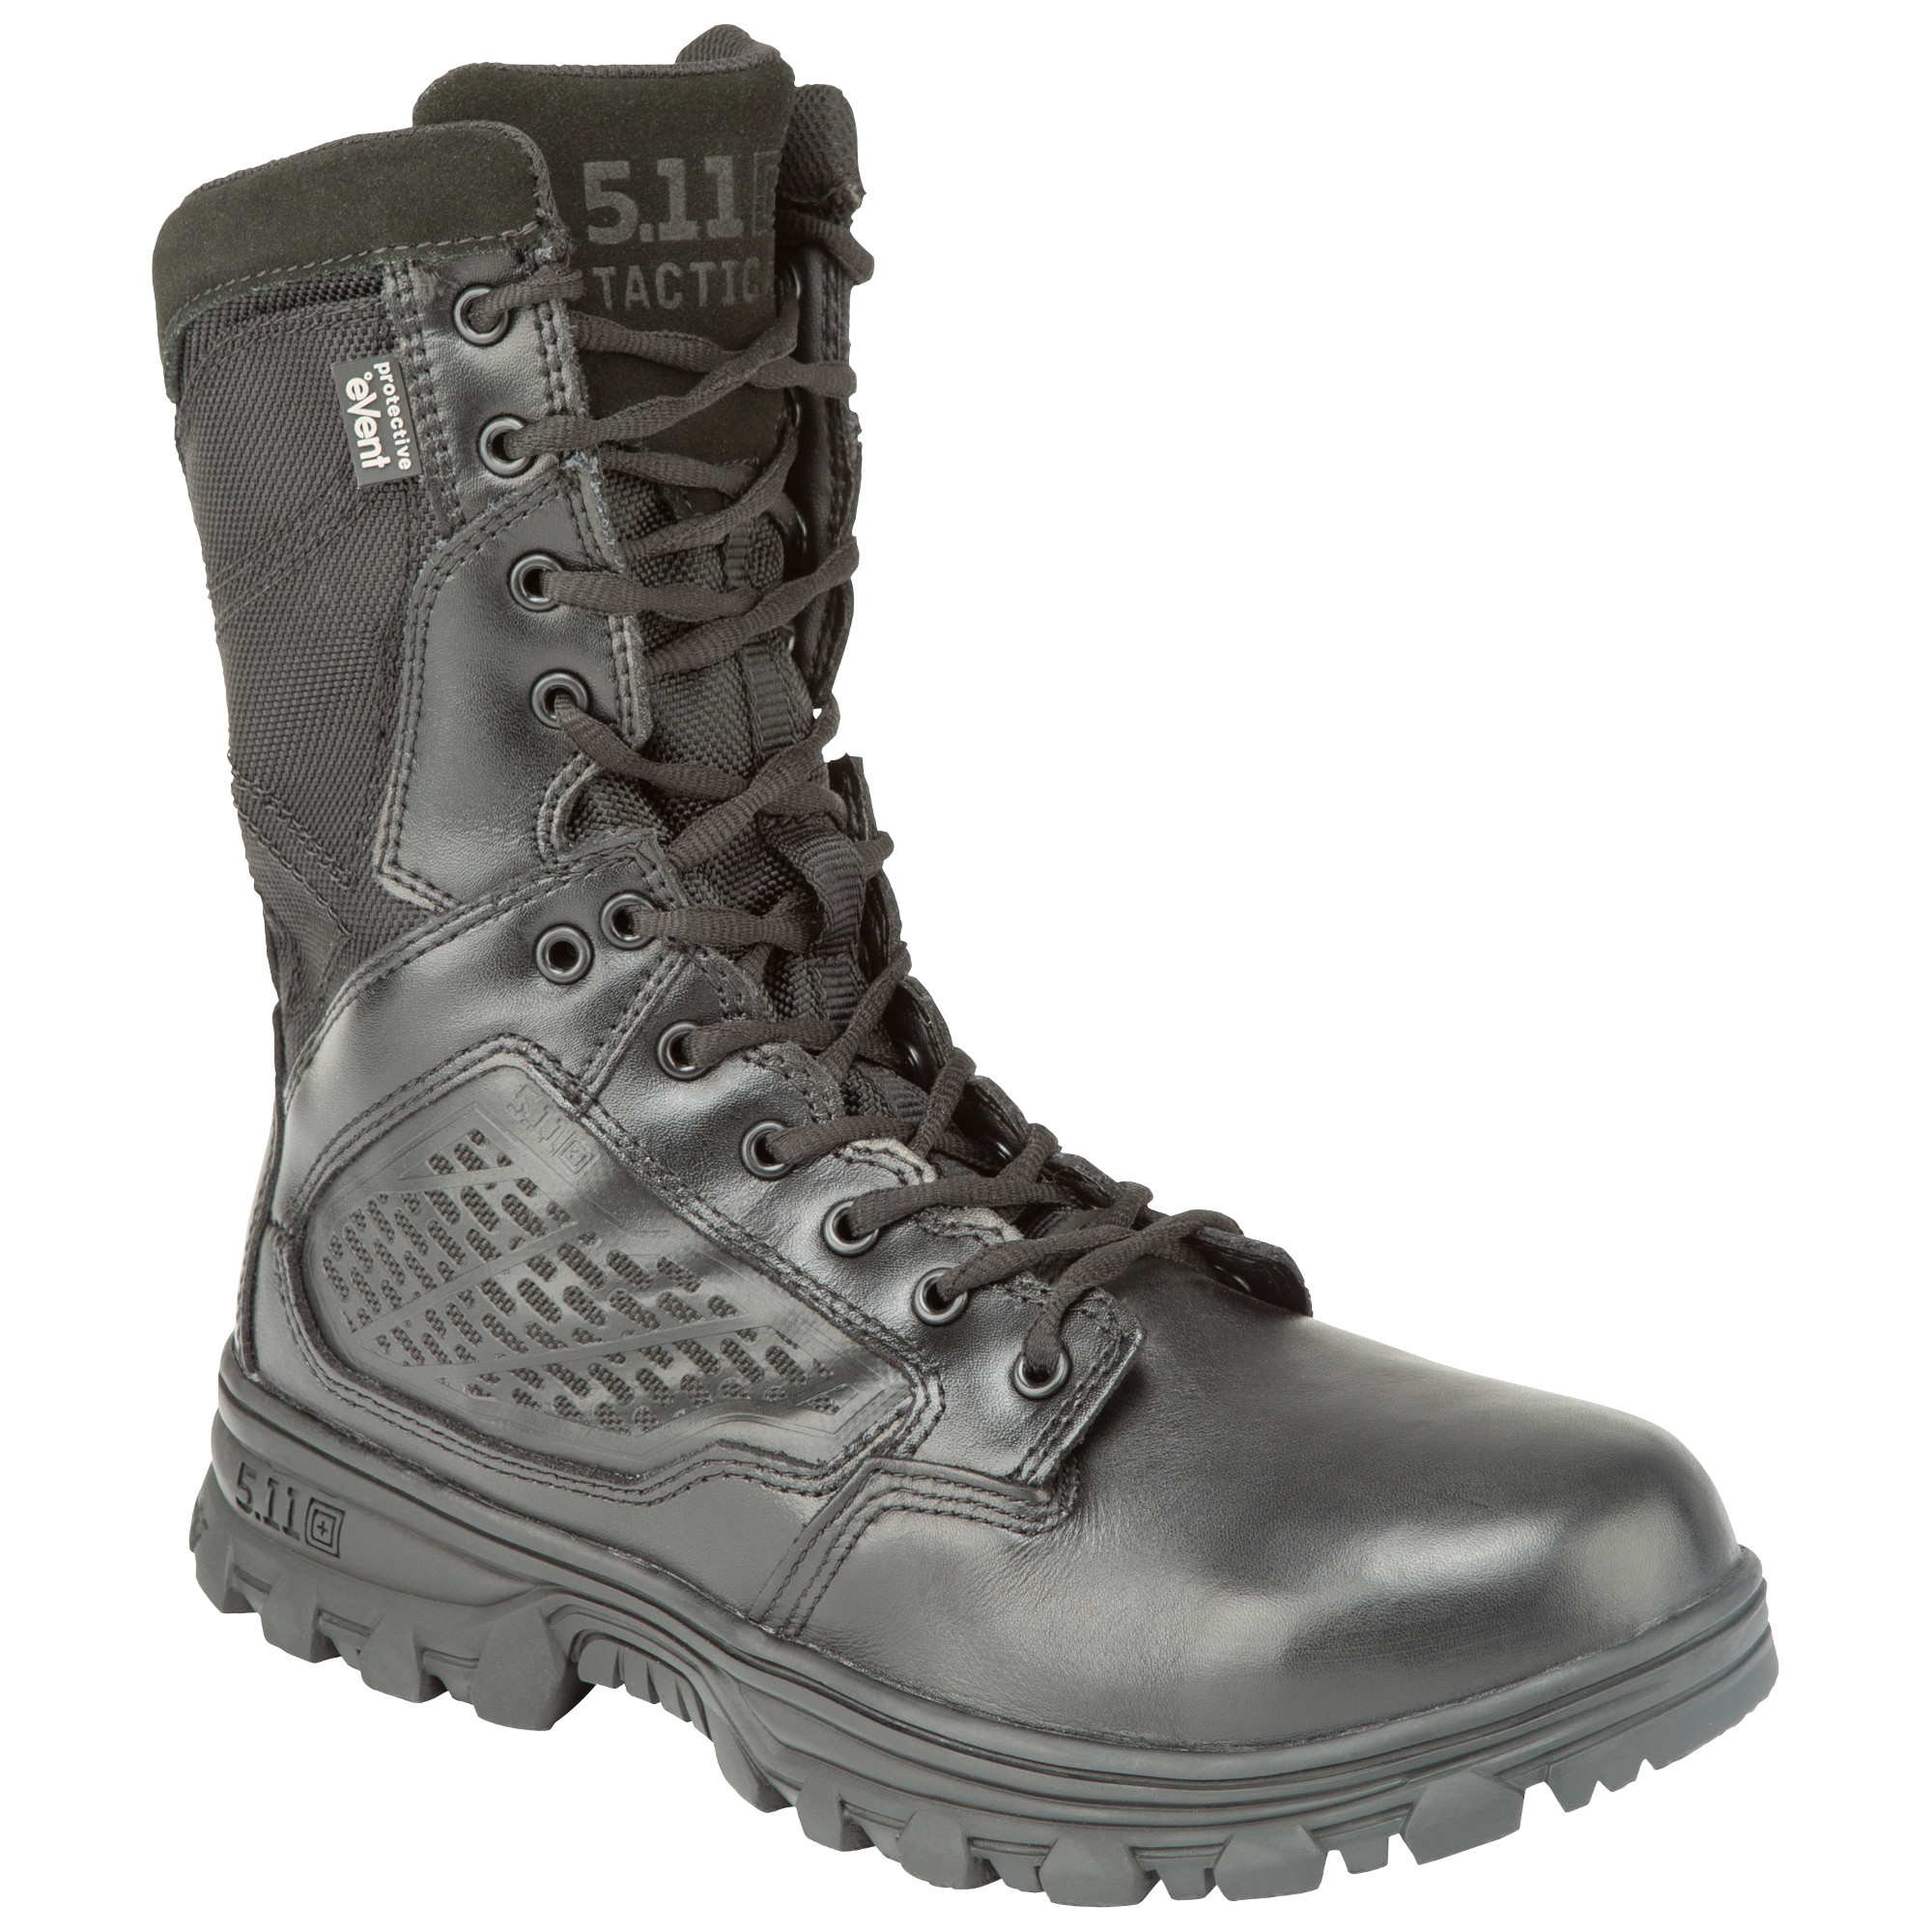 5.11 Tactical Men EVO 8 Waterproof Boot with Sidezip thumbnail